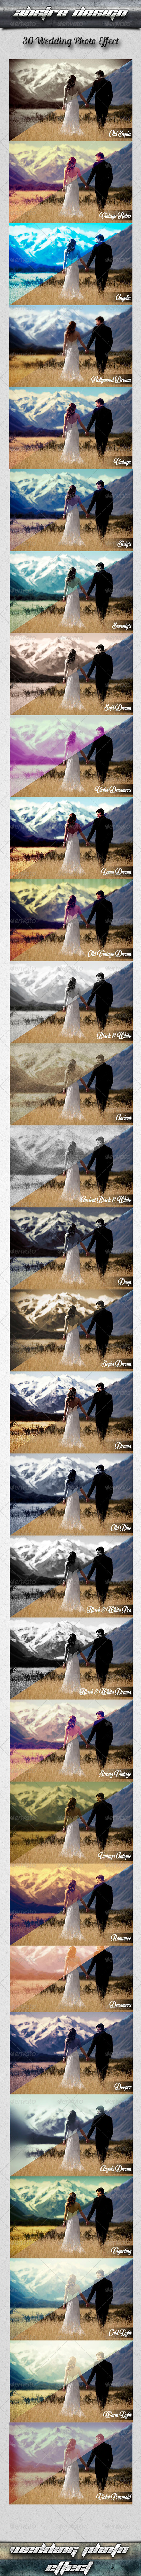 GraphicRiver 30 Wedding Photo Actions 8080793